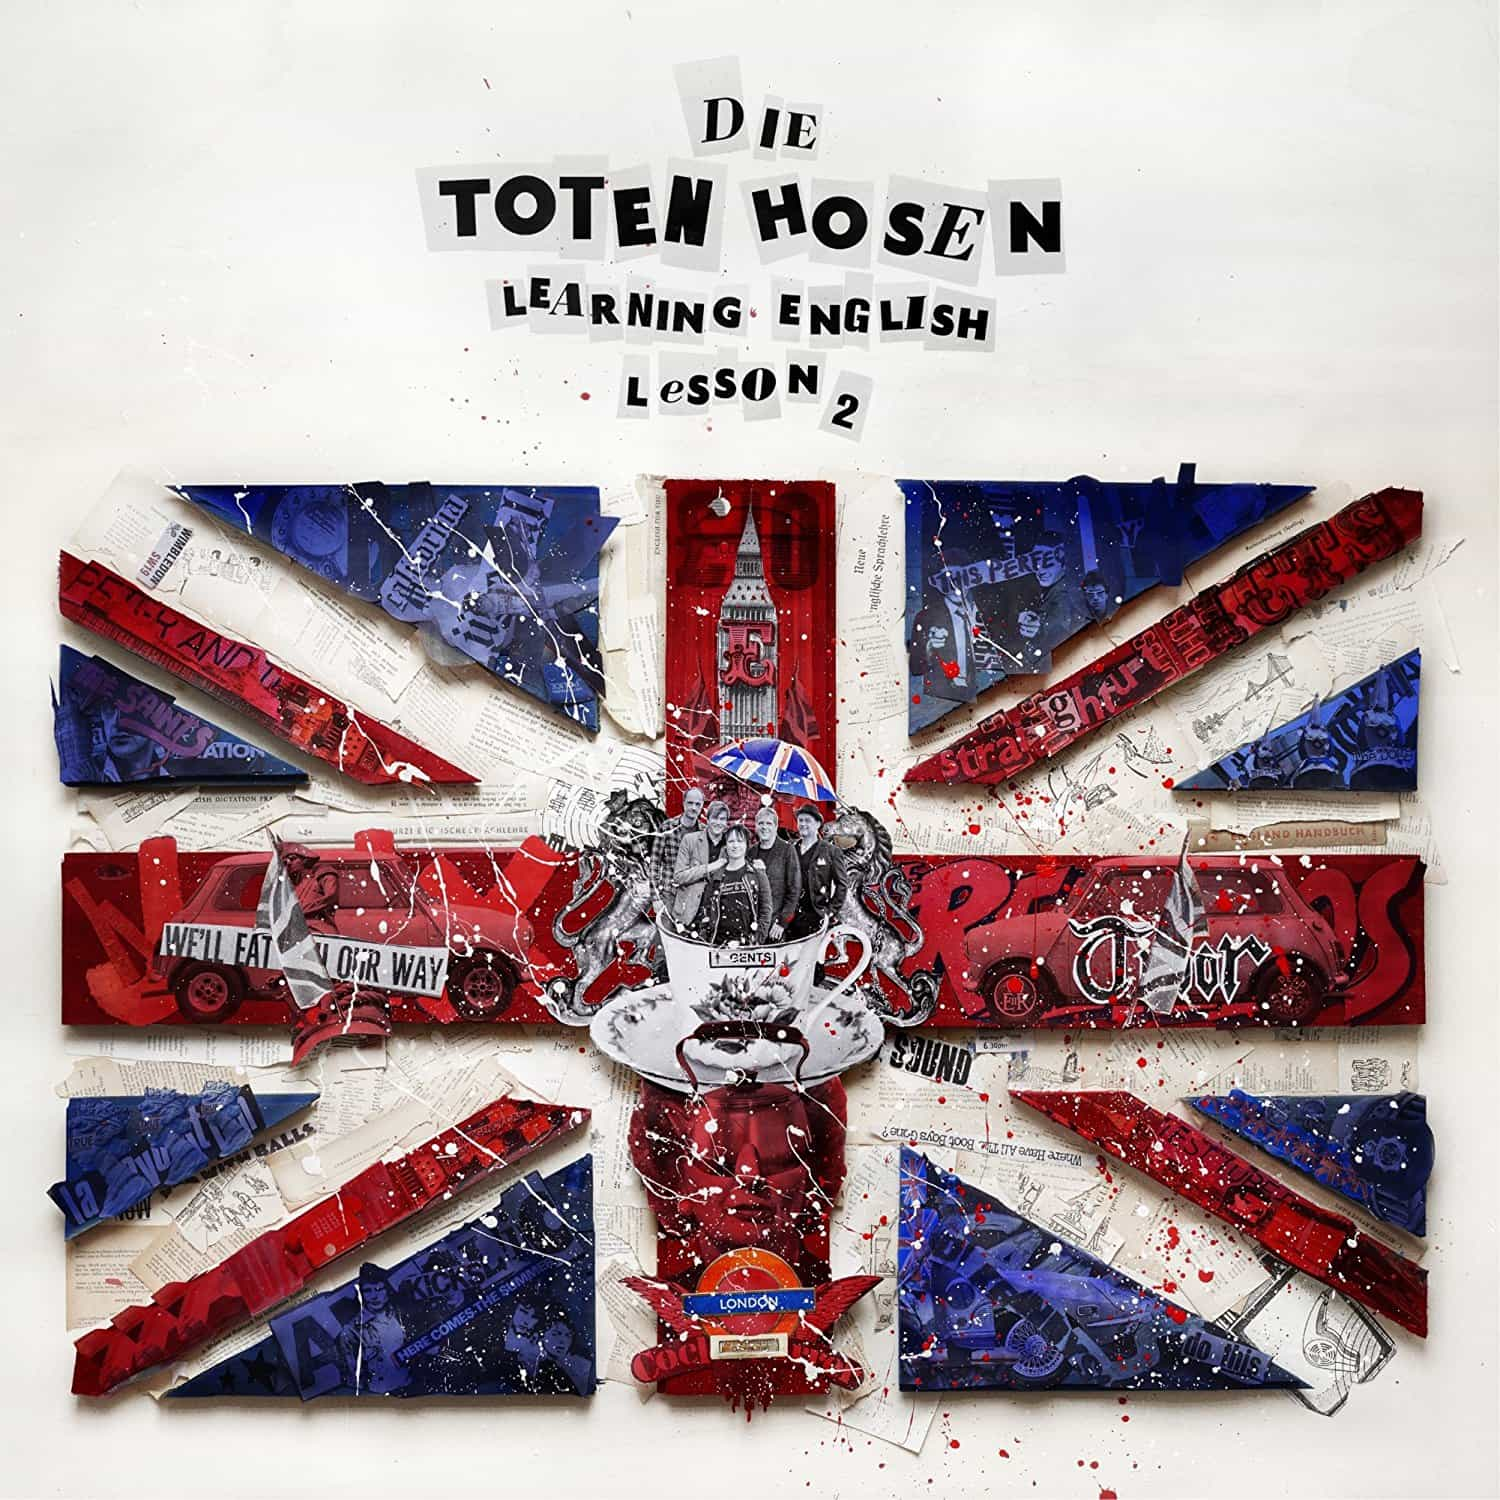 Toten Hosen - Learning English Lesson 2